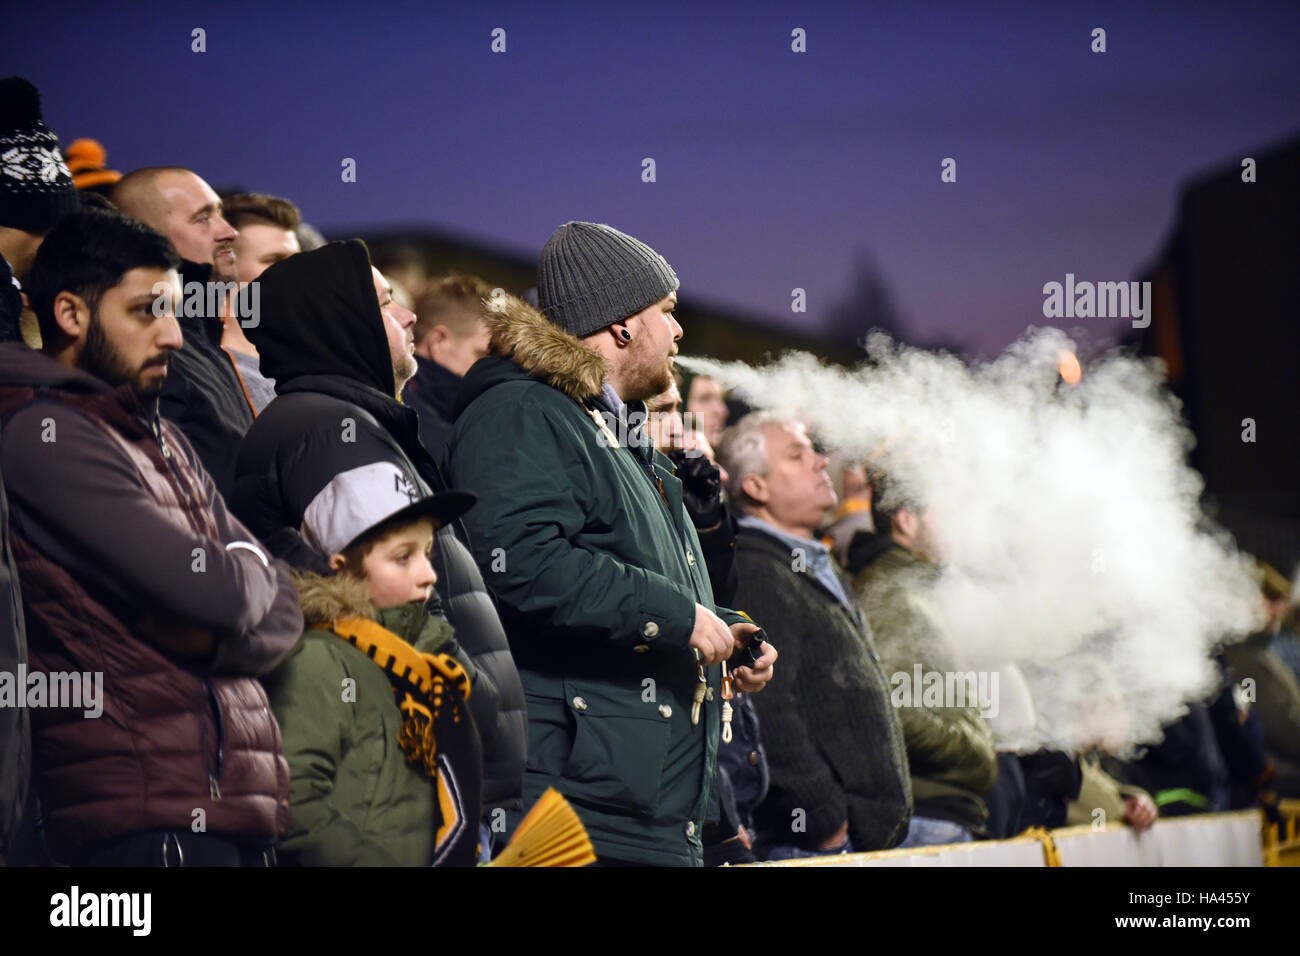 Man vaping in crowd at football match - Stock Image